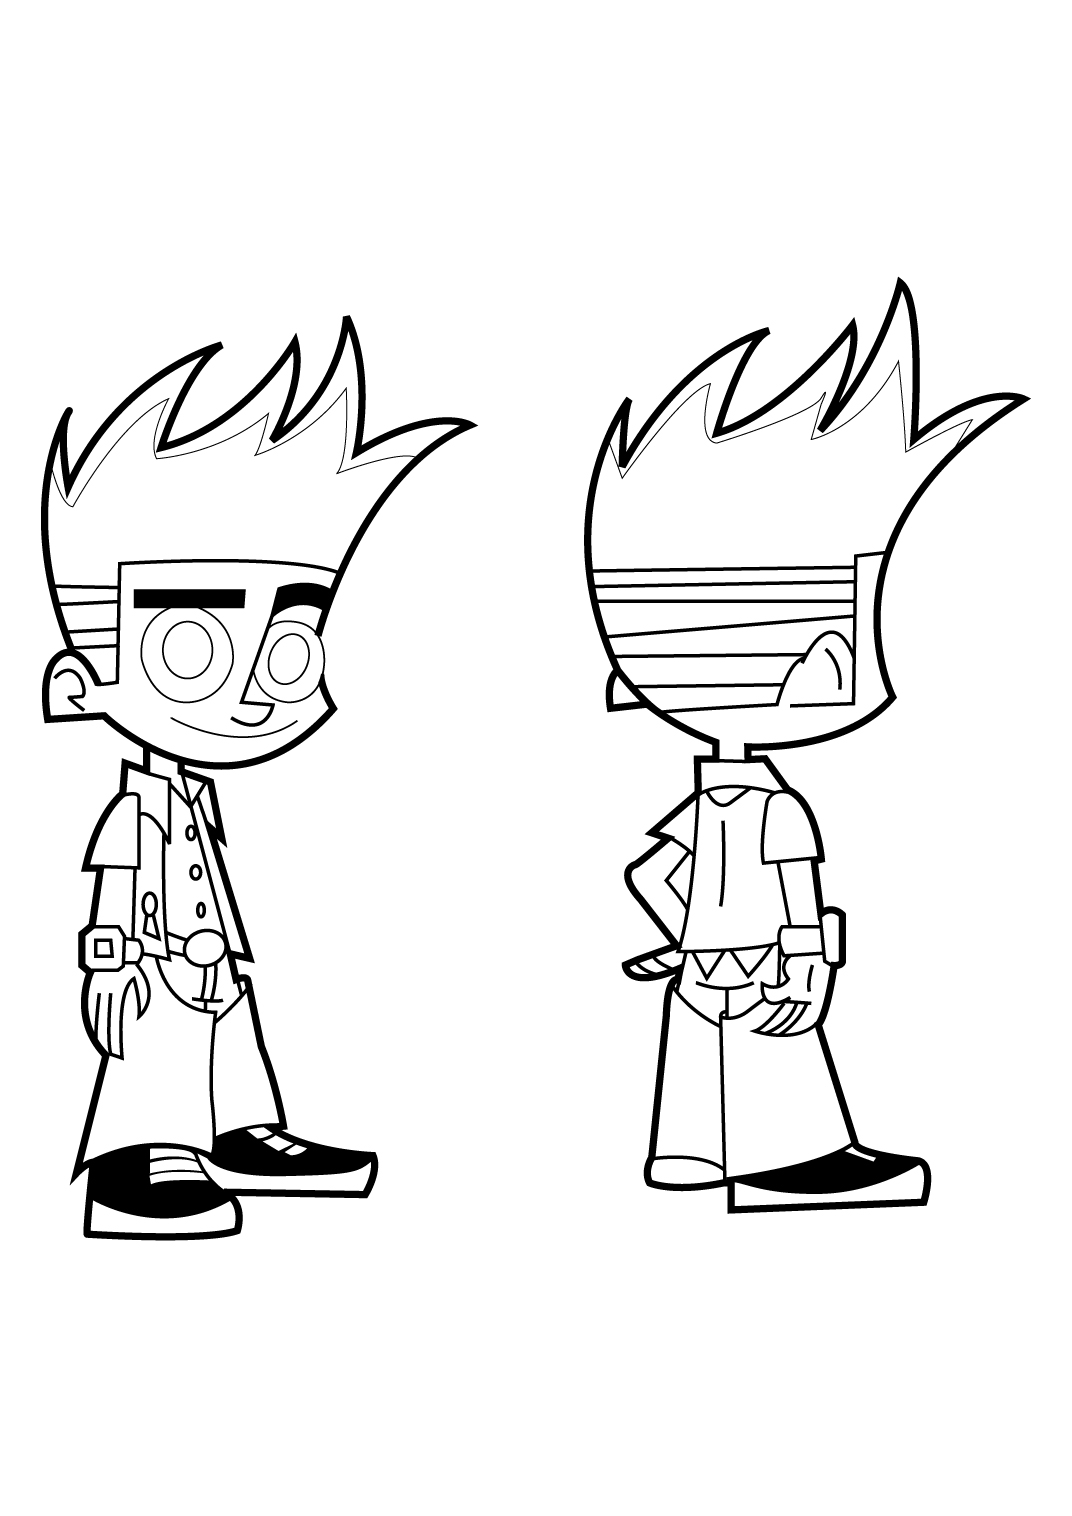 Johnny test frente e verso